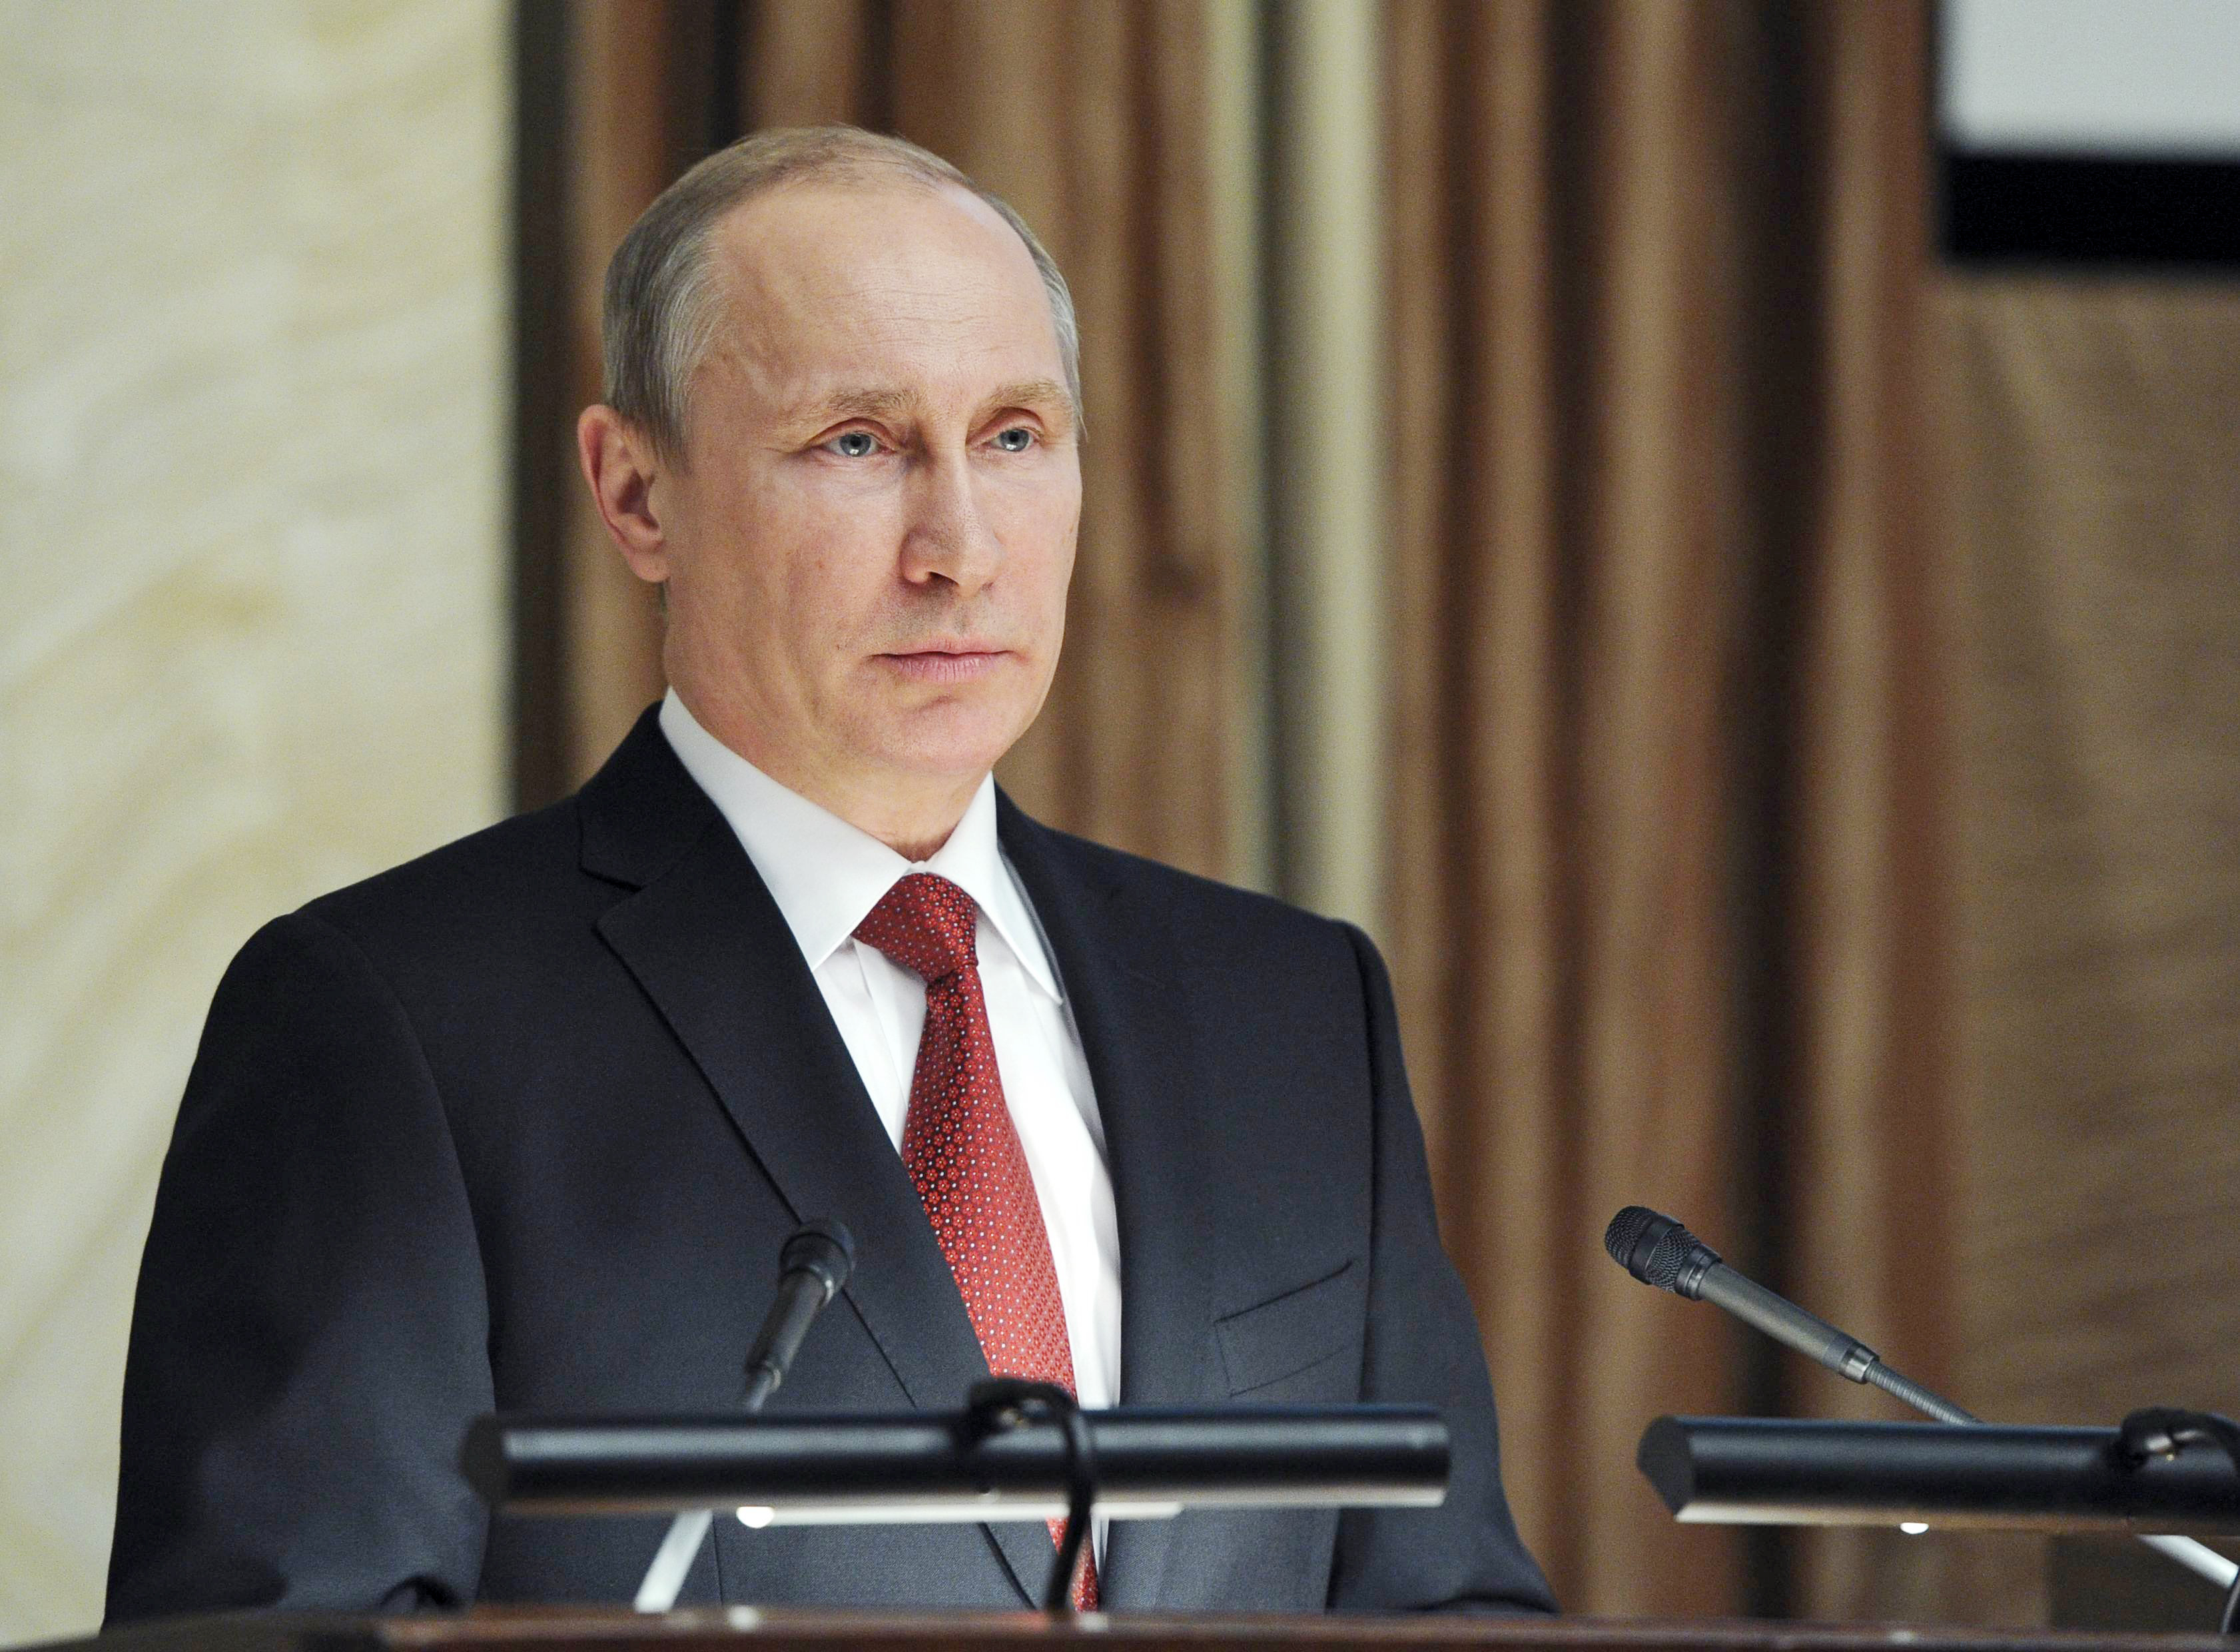 Russia's President Vladimir Putin delivers a speech during a session of the board of the FSB security service in Moscow April 7, 2014.